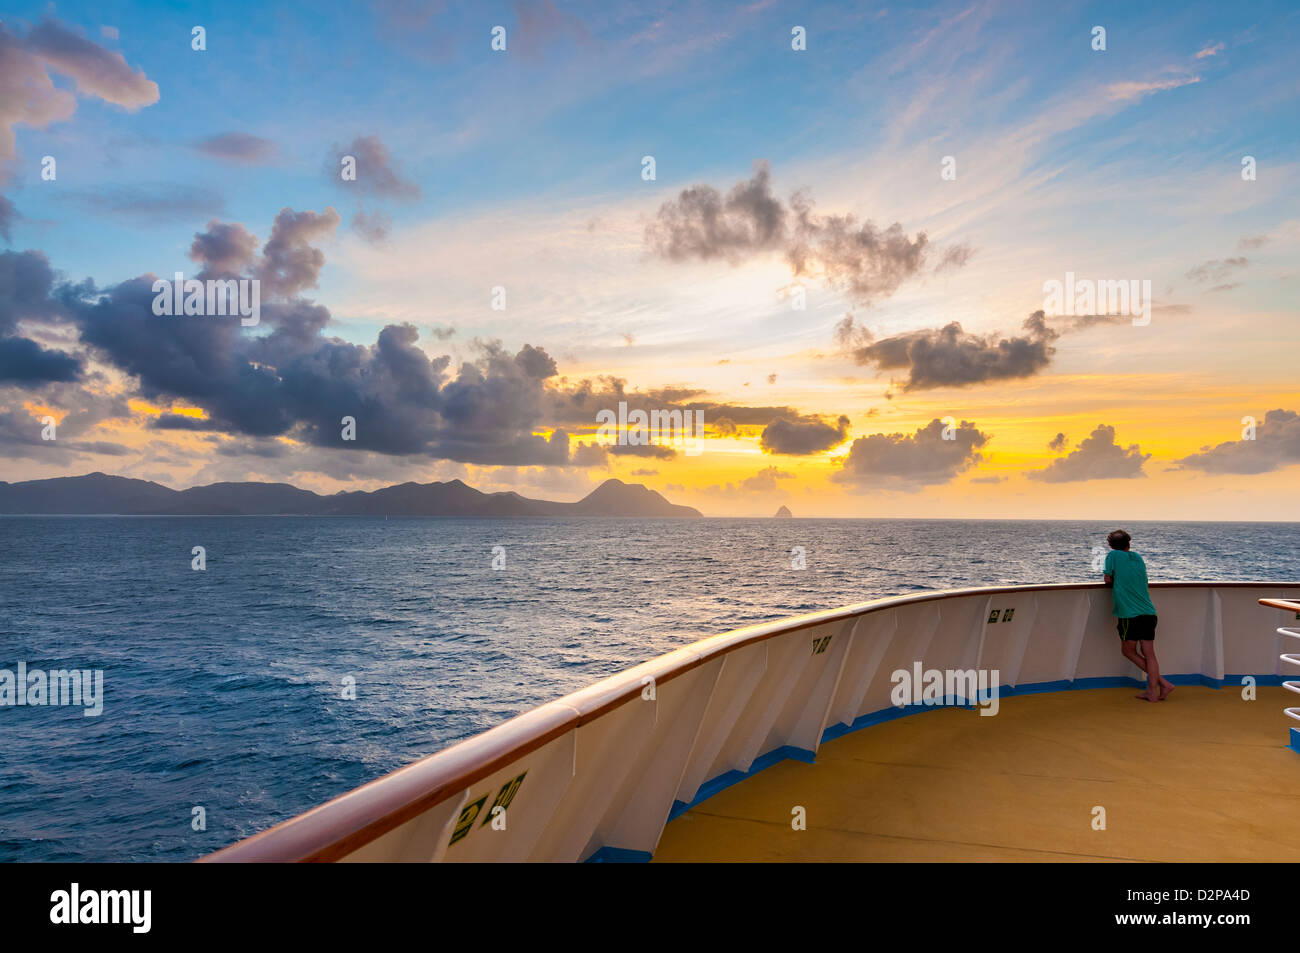 Martinique Fort de France caribbean island sunrise tropical view l Stock Photo